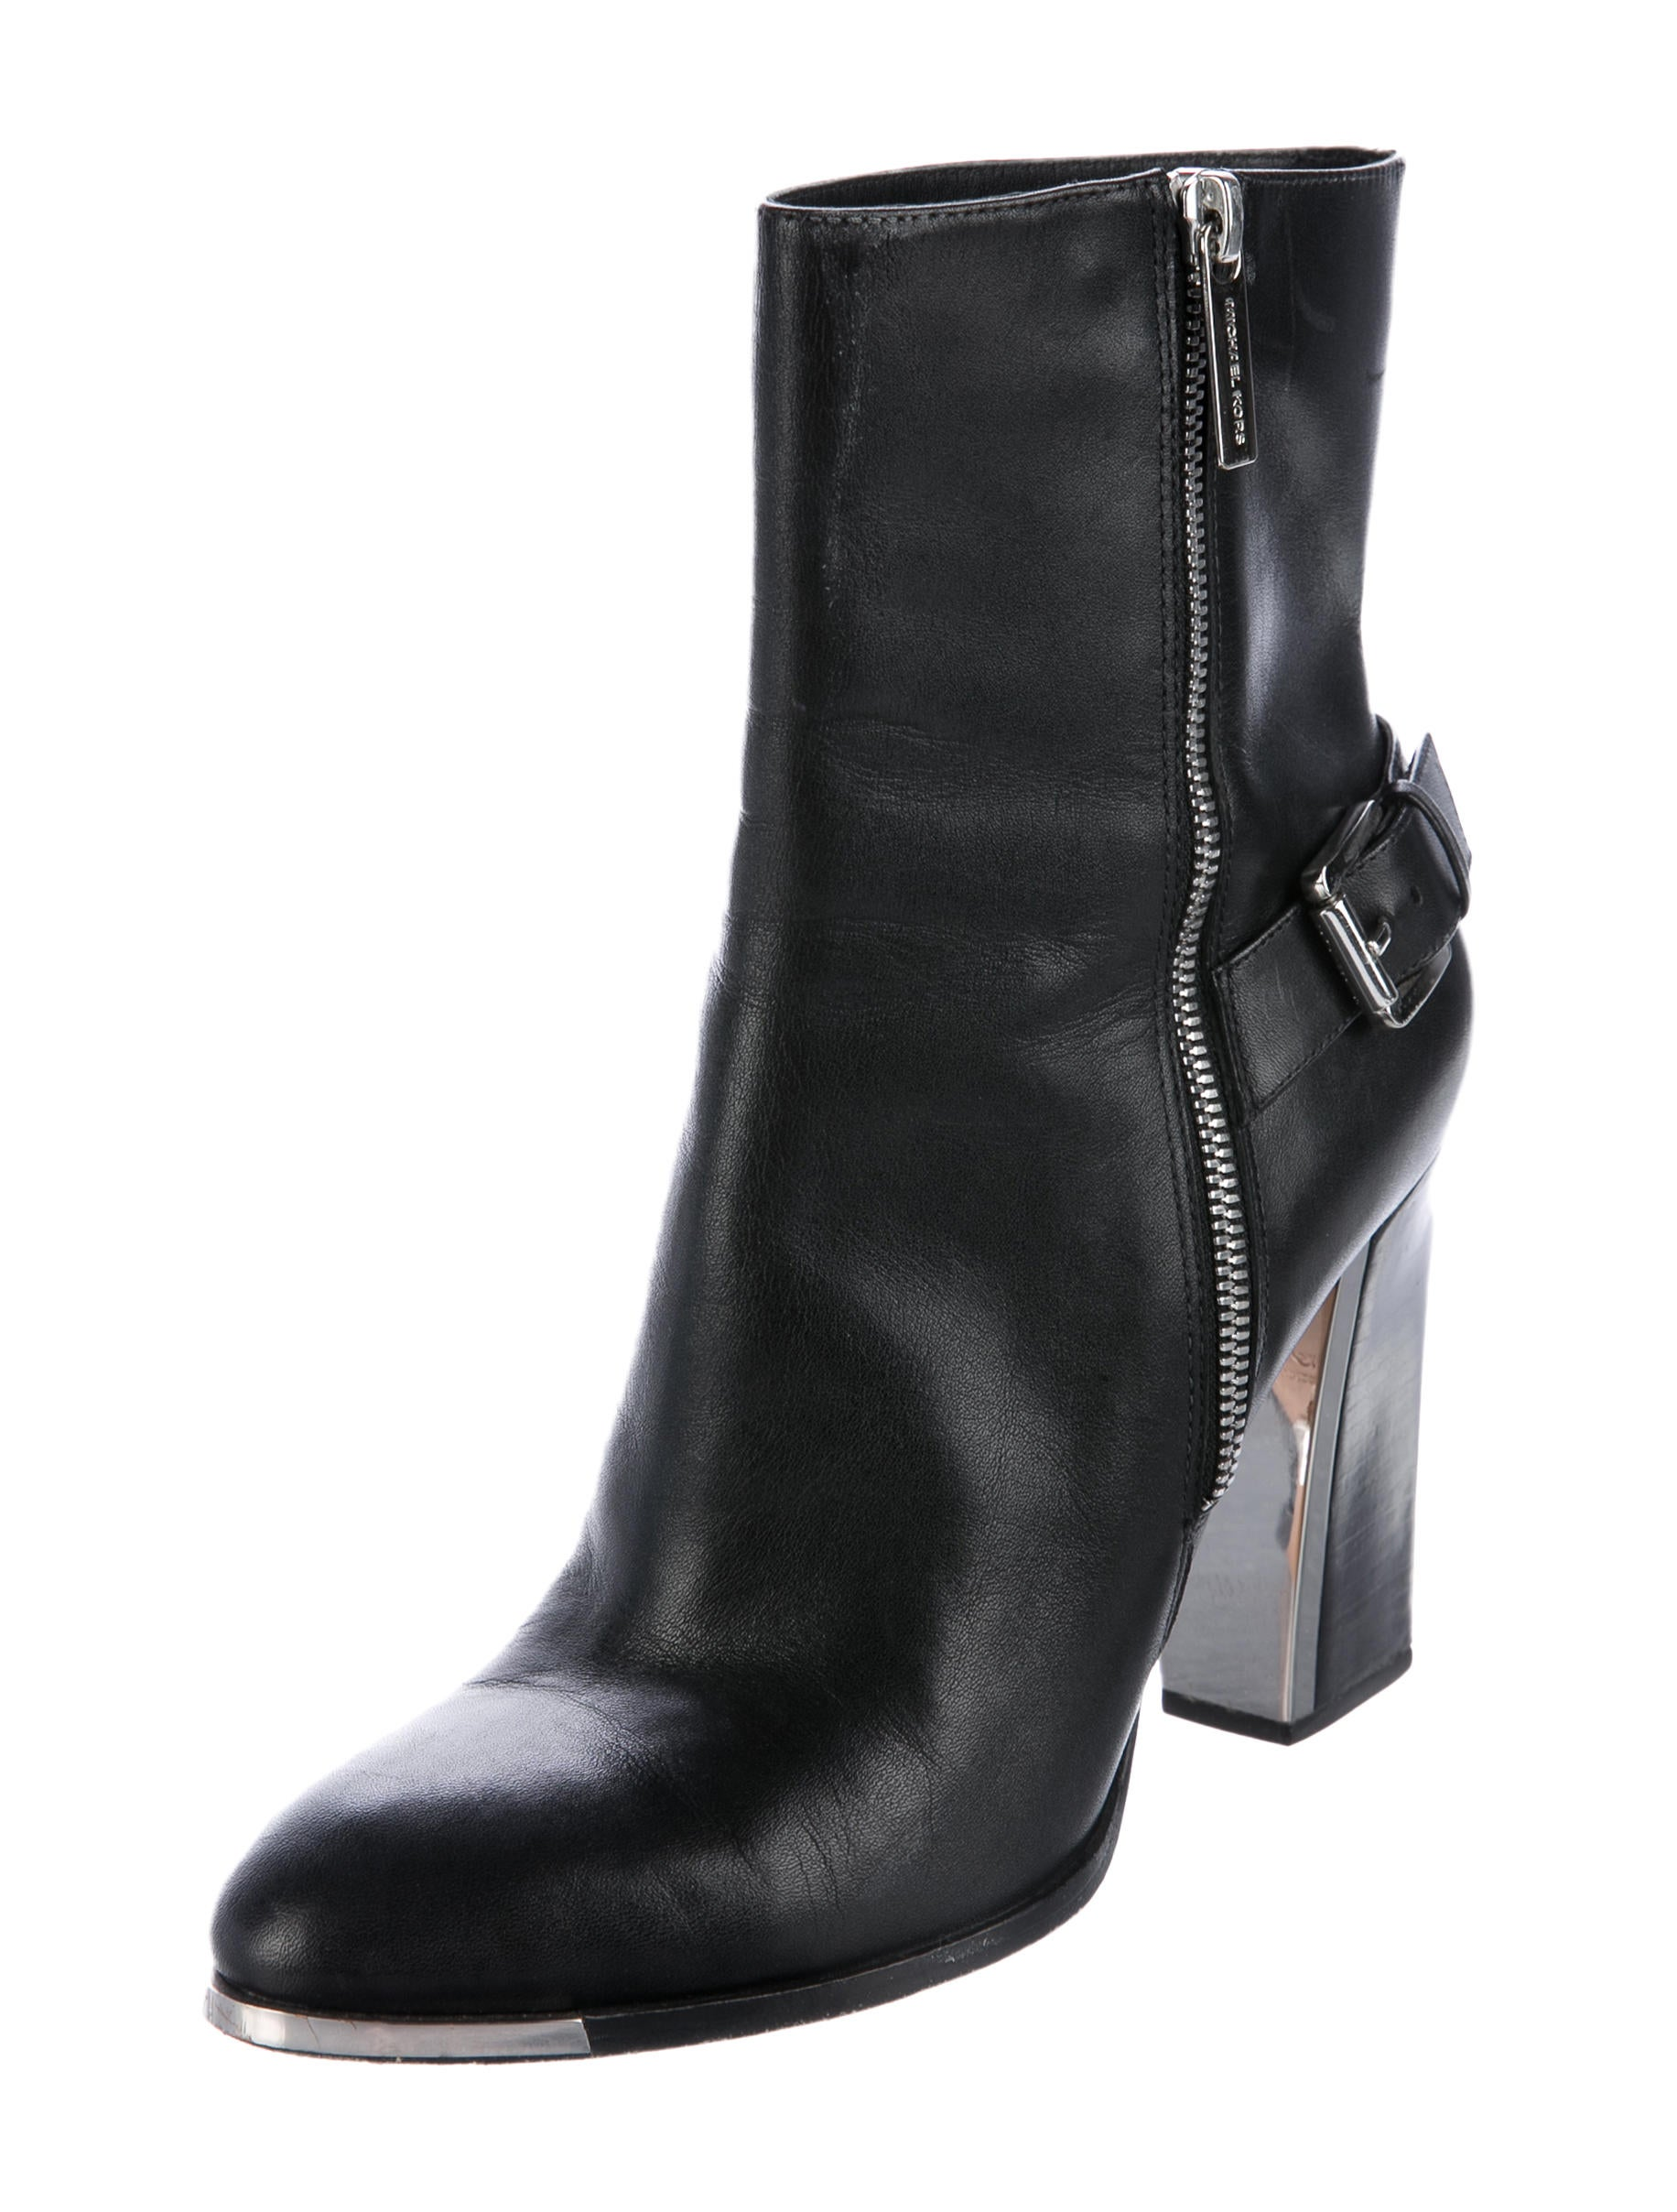 michael kors leather ankle boots shoes mic56469 the. Black Bedroom Furniture Sets. Home Design Ideas